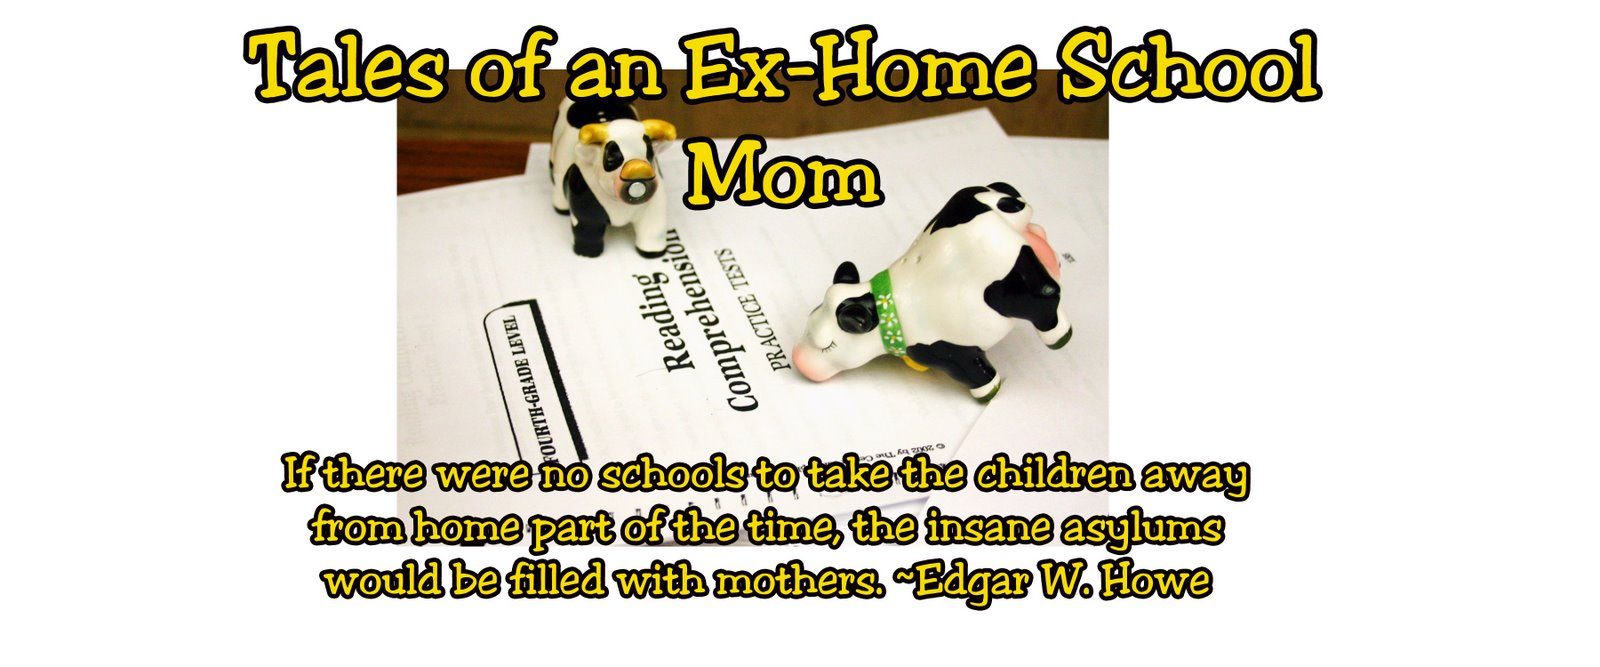 Tales of an Ex-Home School Mom